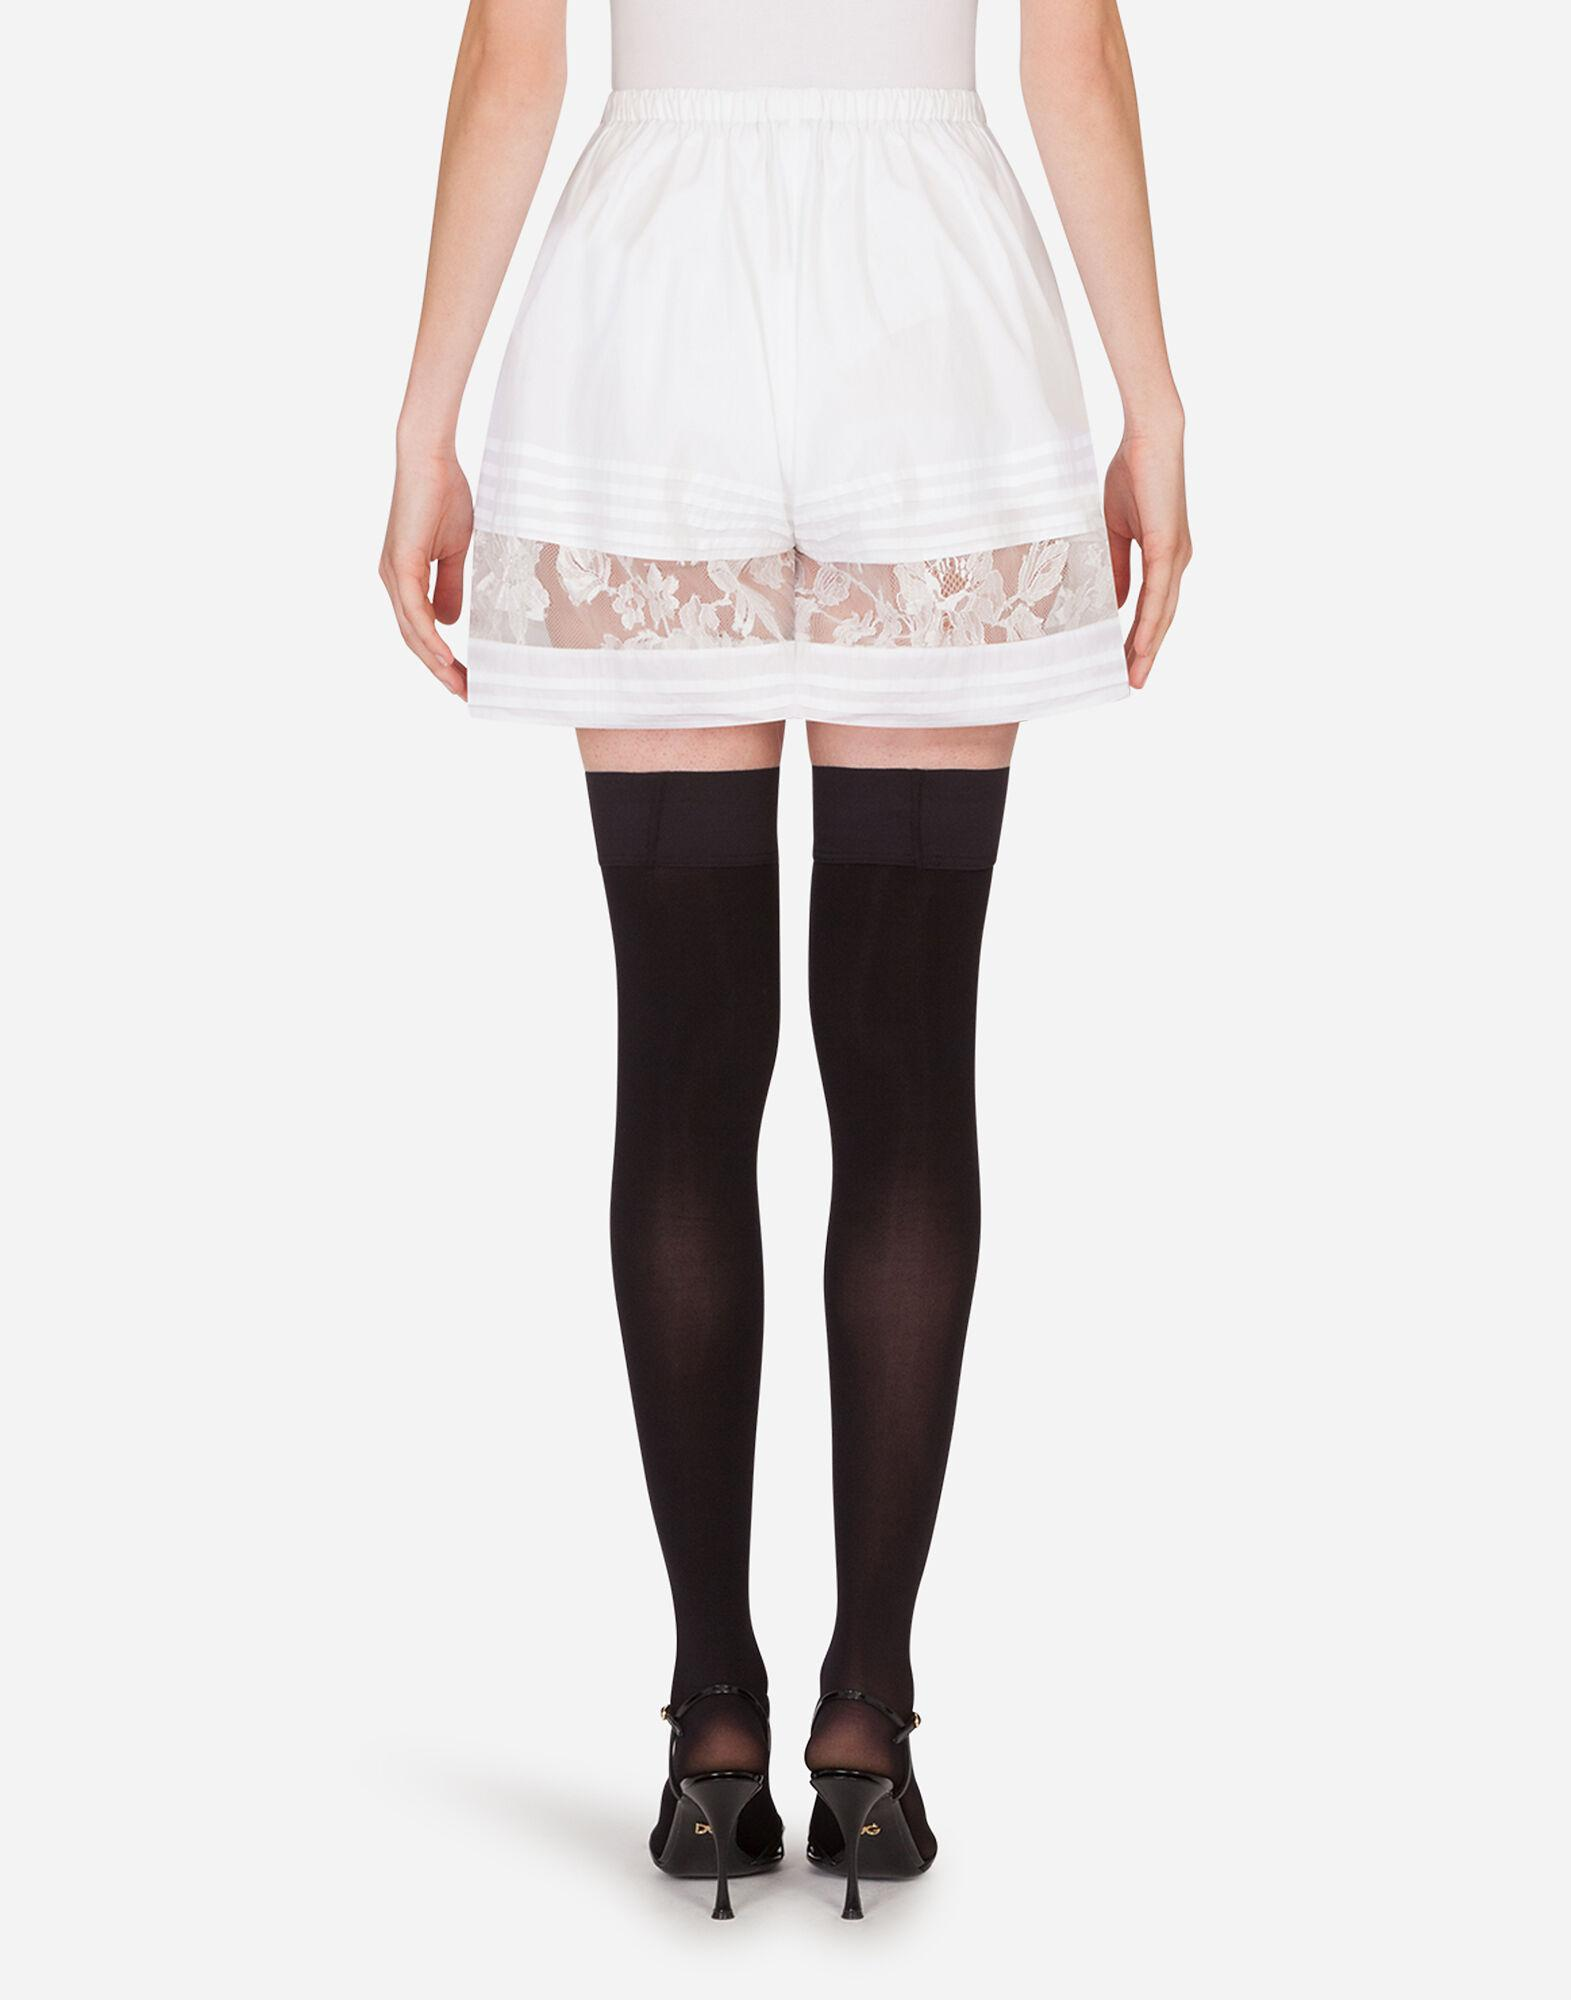 Silk shorts with lace details 1